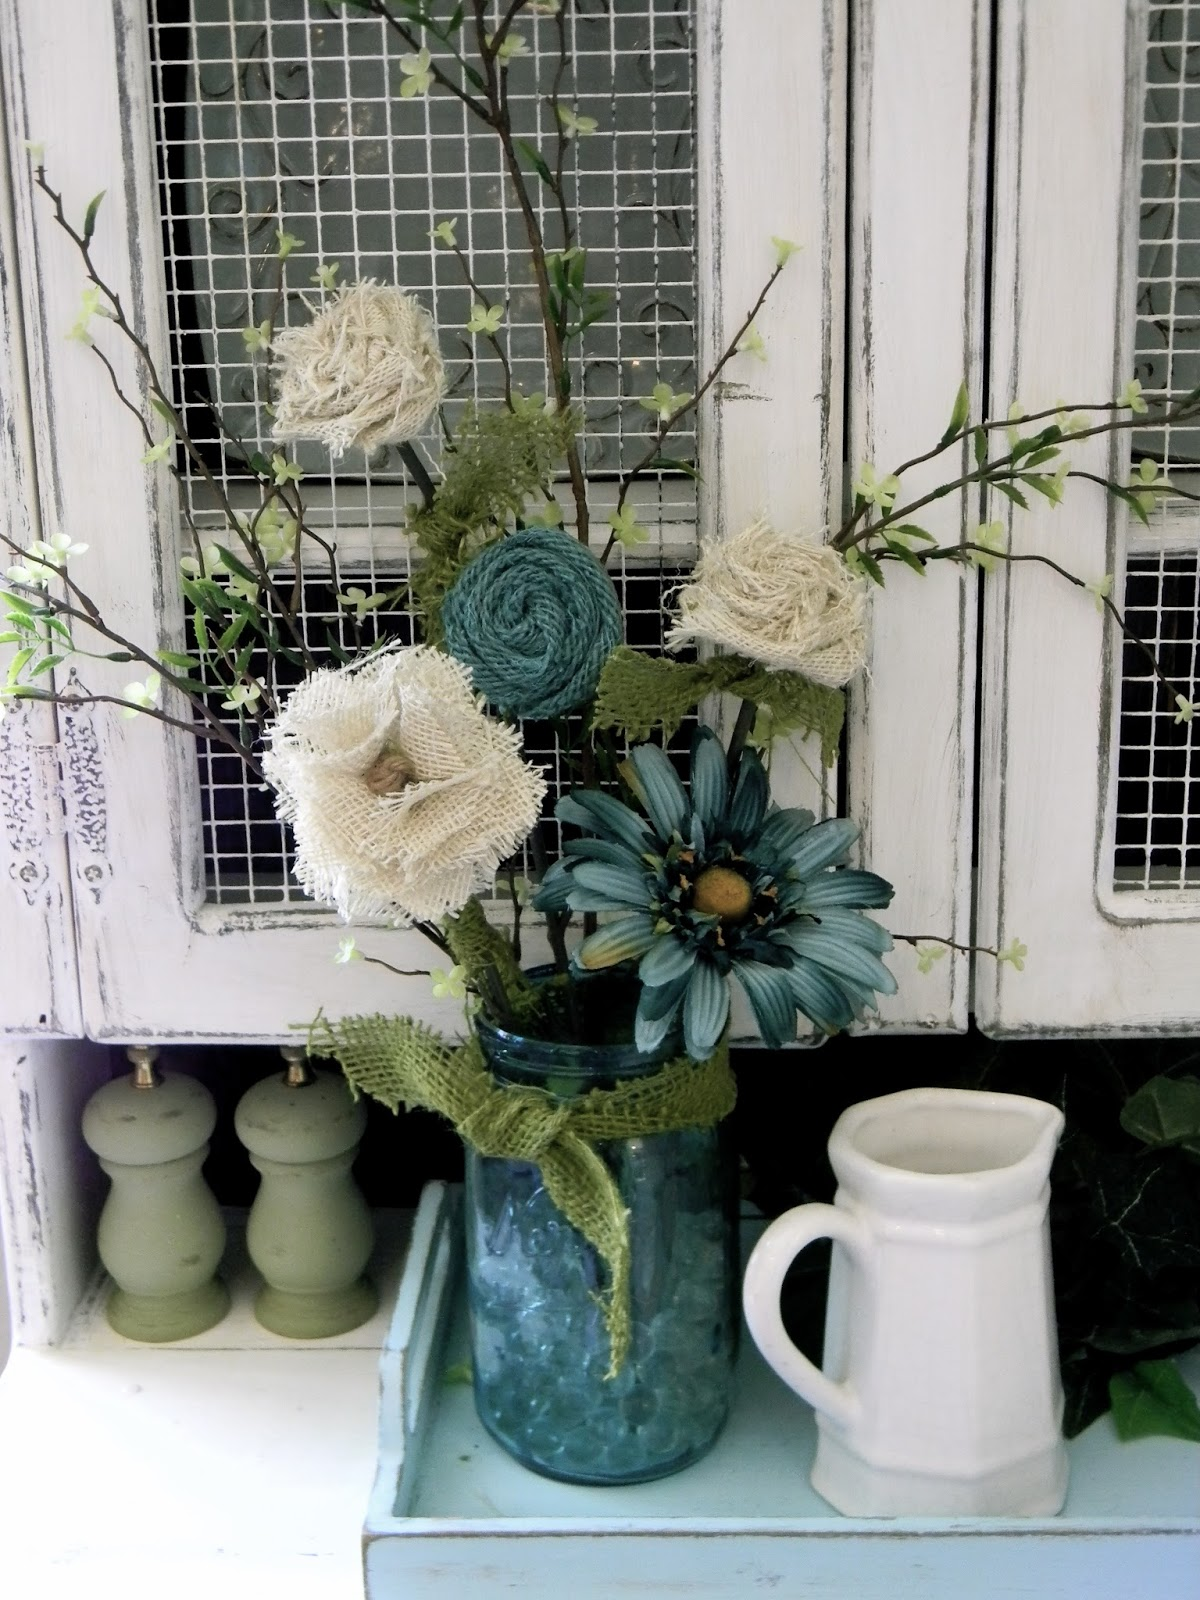 Little bit of paint burlap flower tutorial lately at hobby lobby ive been seeing some adorable burlap flowers i really like the look of them but i am too cheap even on sale the price makes me izmirmasajfo